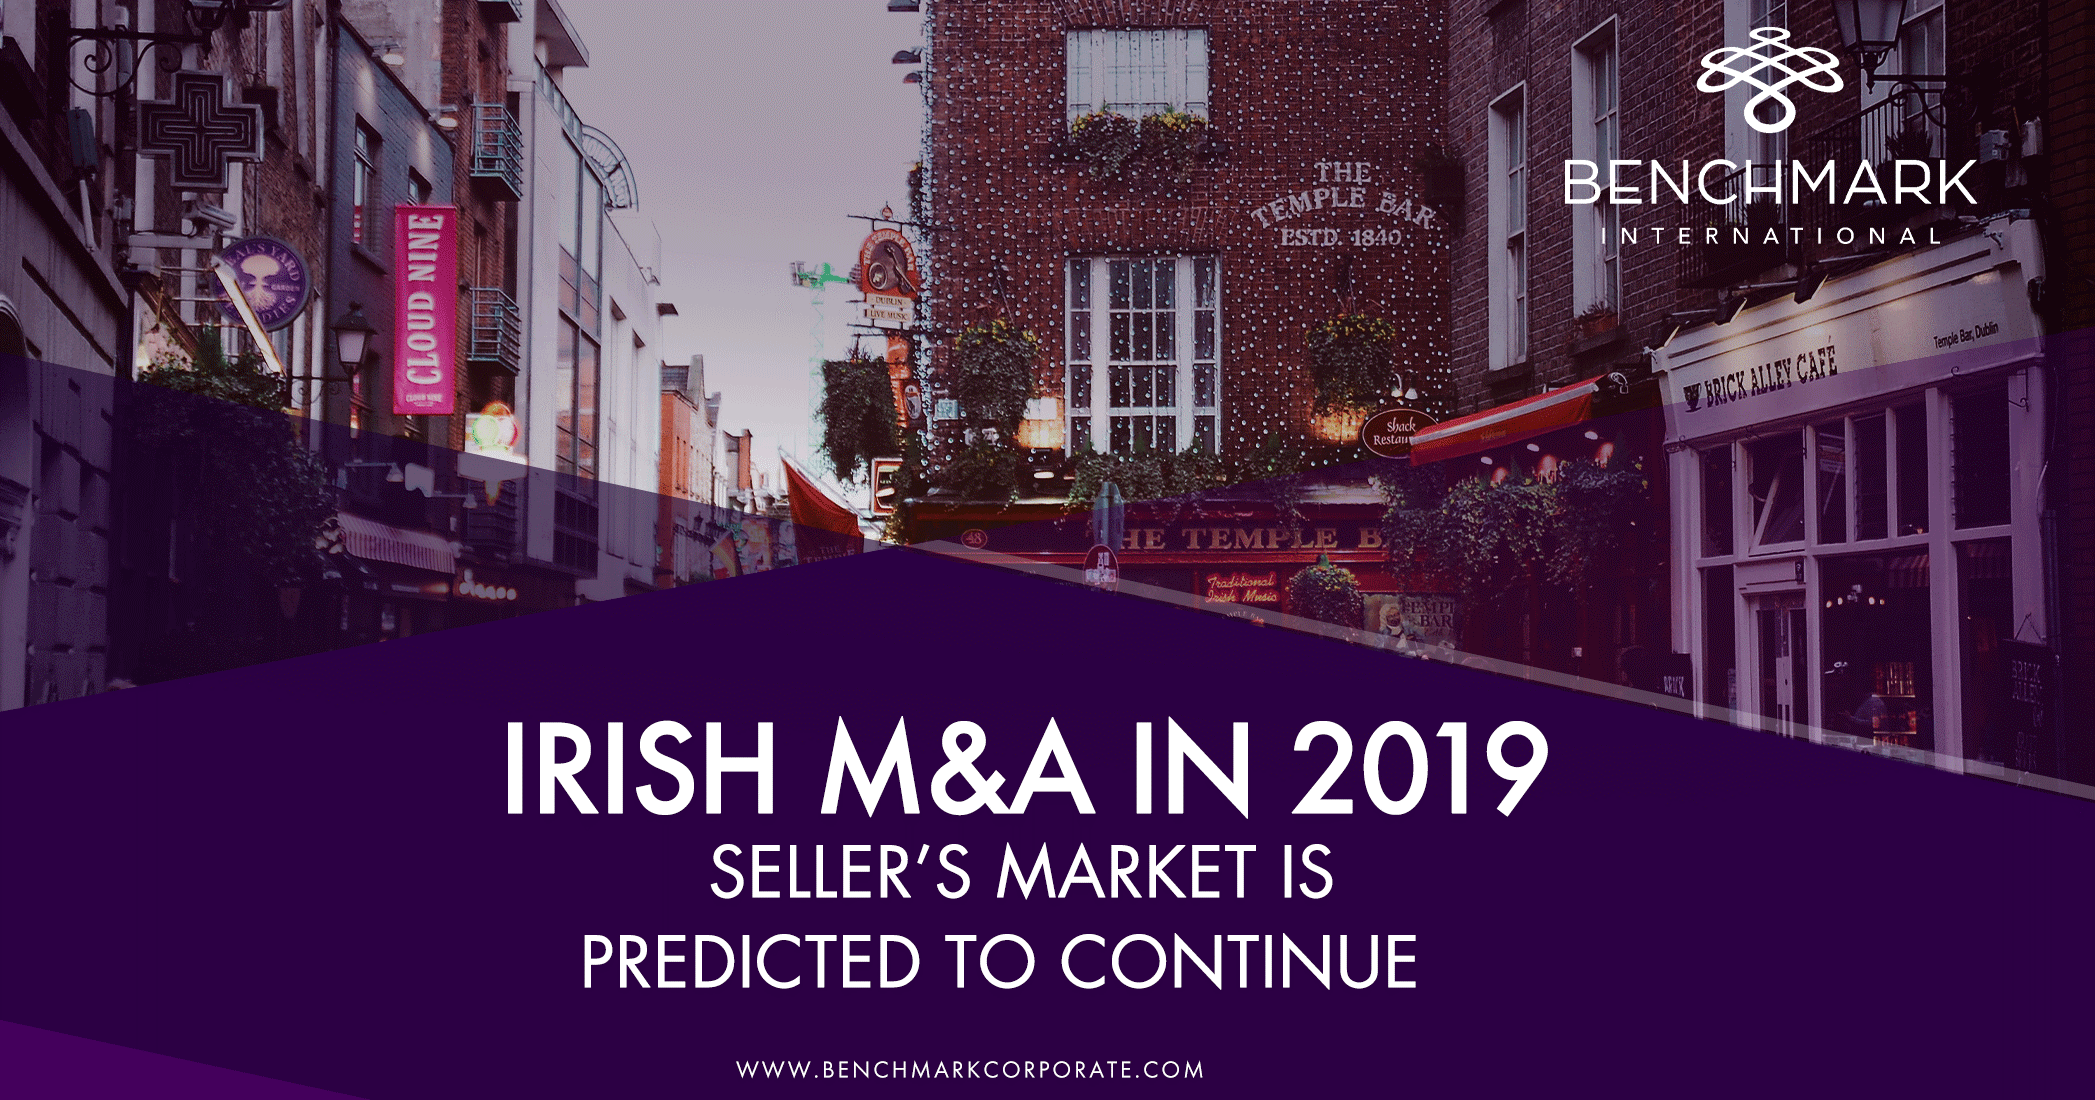 Irish M&A in 2019 – Seller's Market is Predicted to Continue